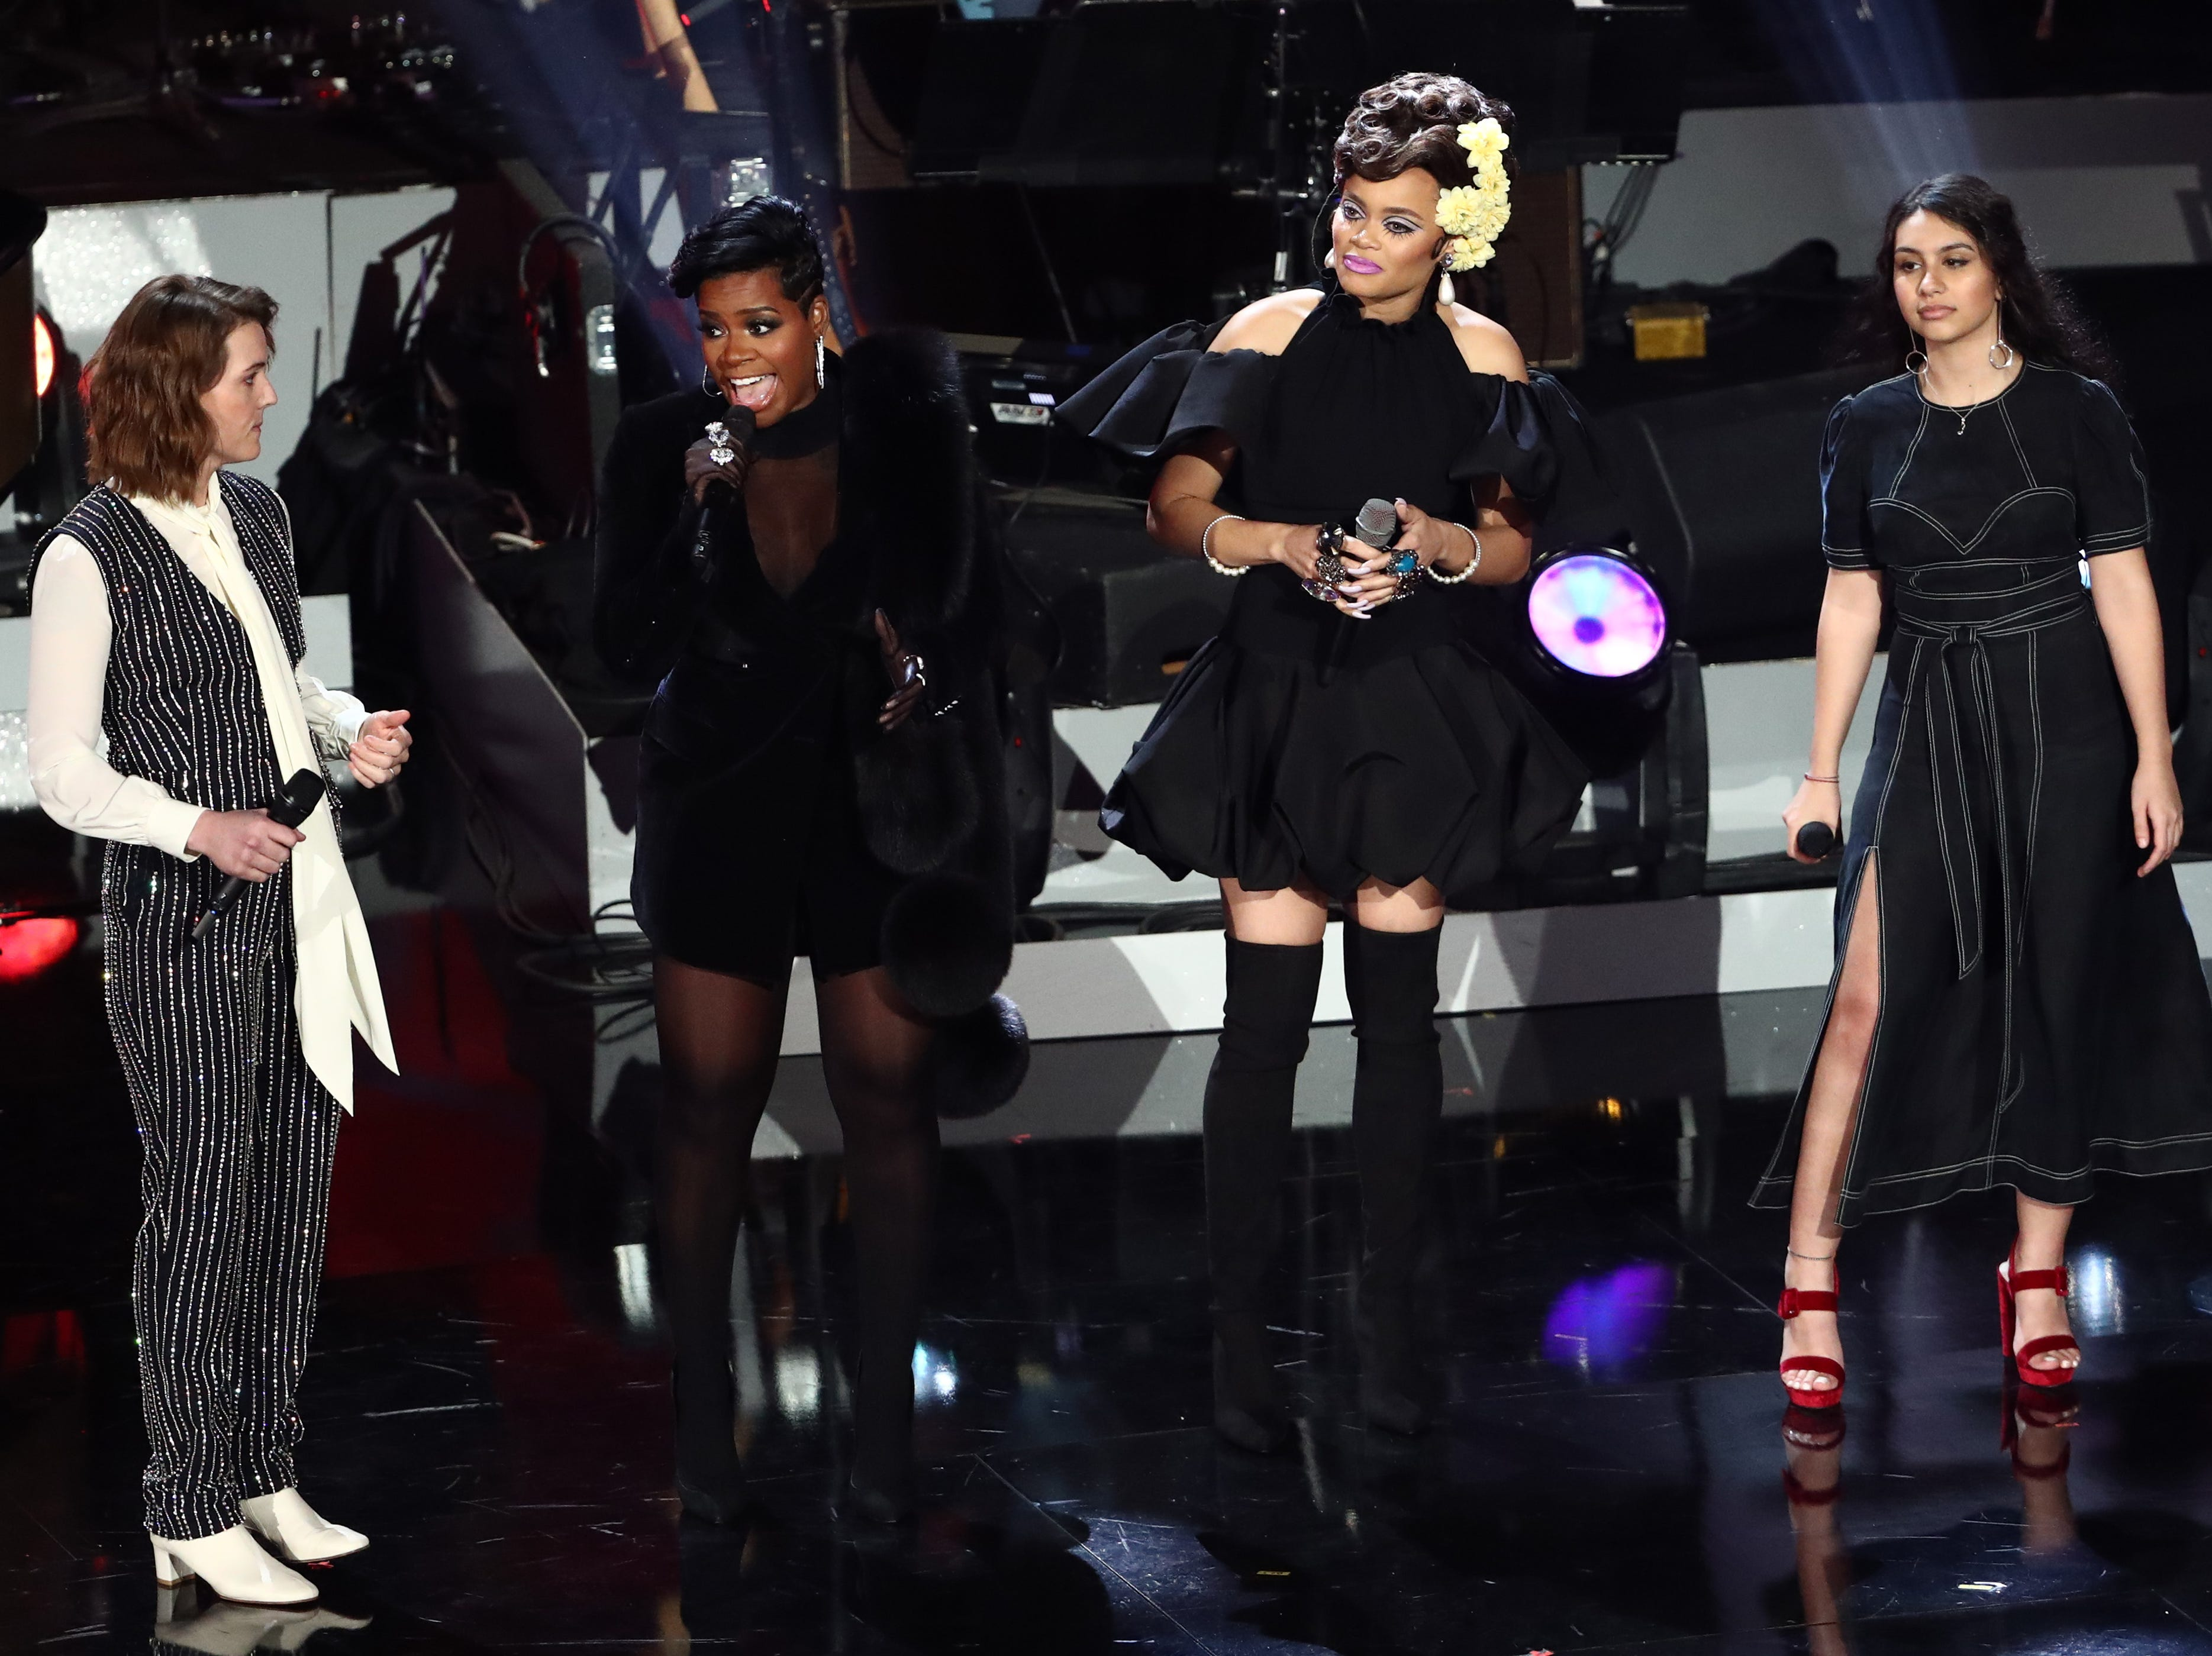 """LOS ANGELES, CA - JANUARY 13:  (L-R) Brandi Carlile, Fantasia, Andra Day and Alessia Cara perform at """"Aretha! A Grammy Celebration For the Queen Of Soul"""" at the Shrine Auditorium on Jan. 13, 2019, in Los Angeles, Calif."""